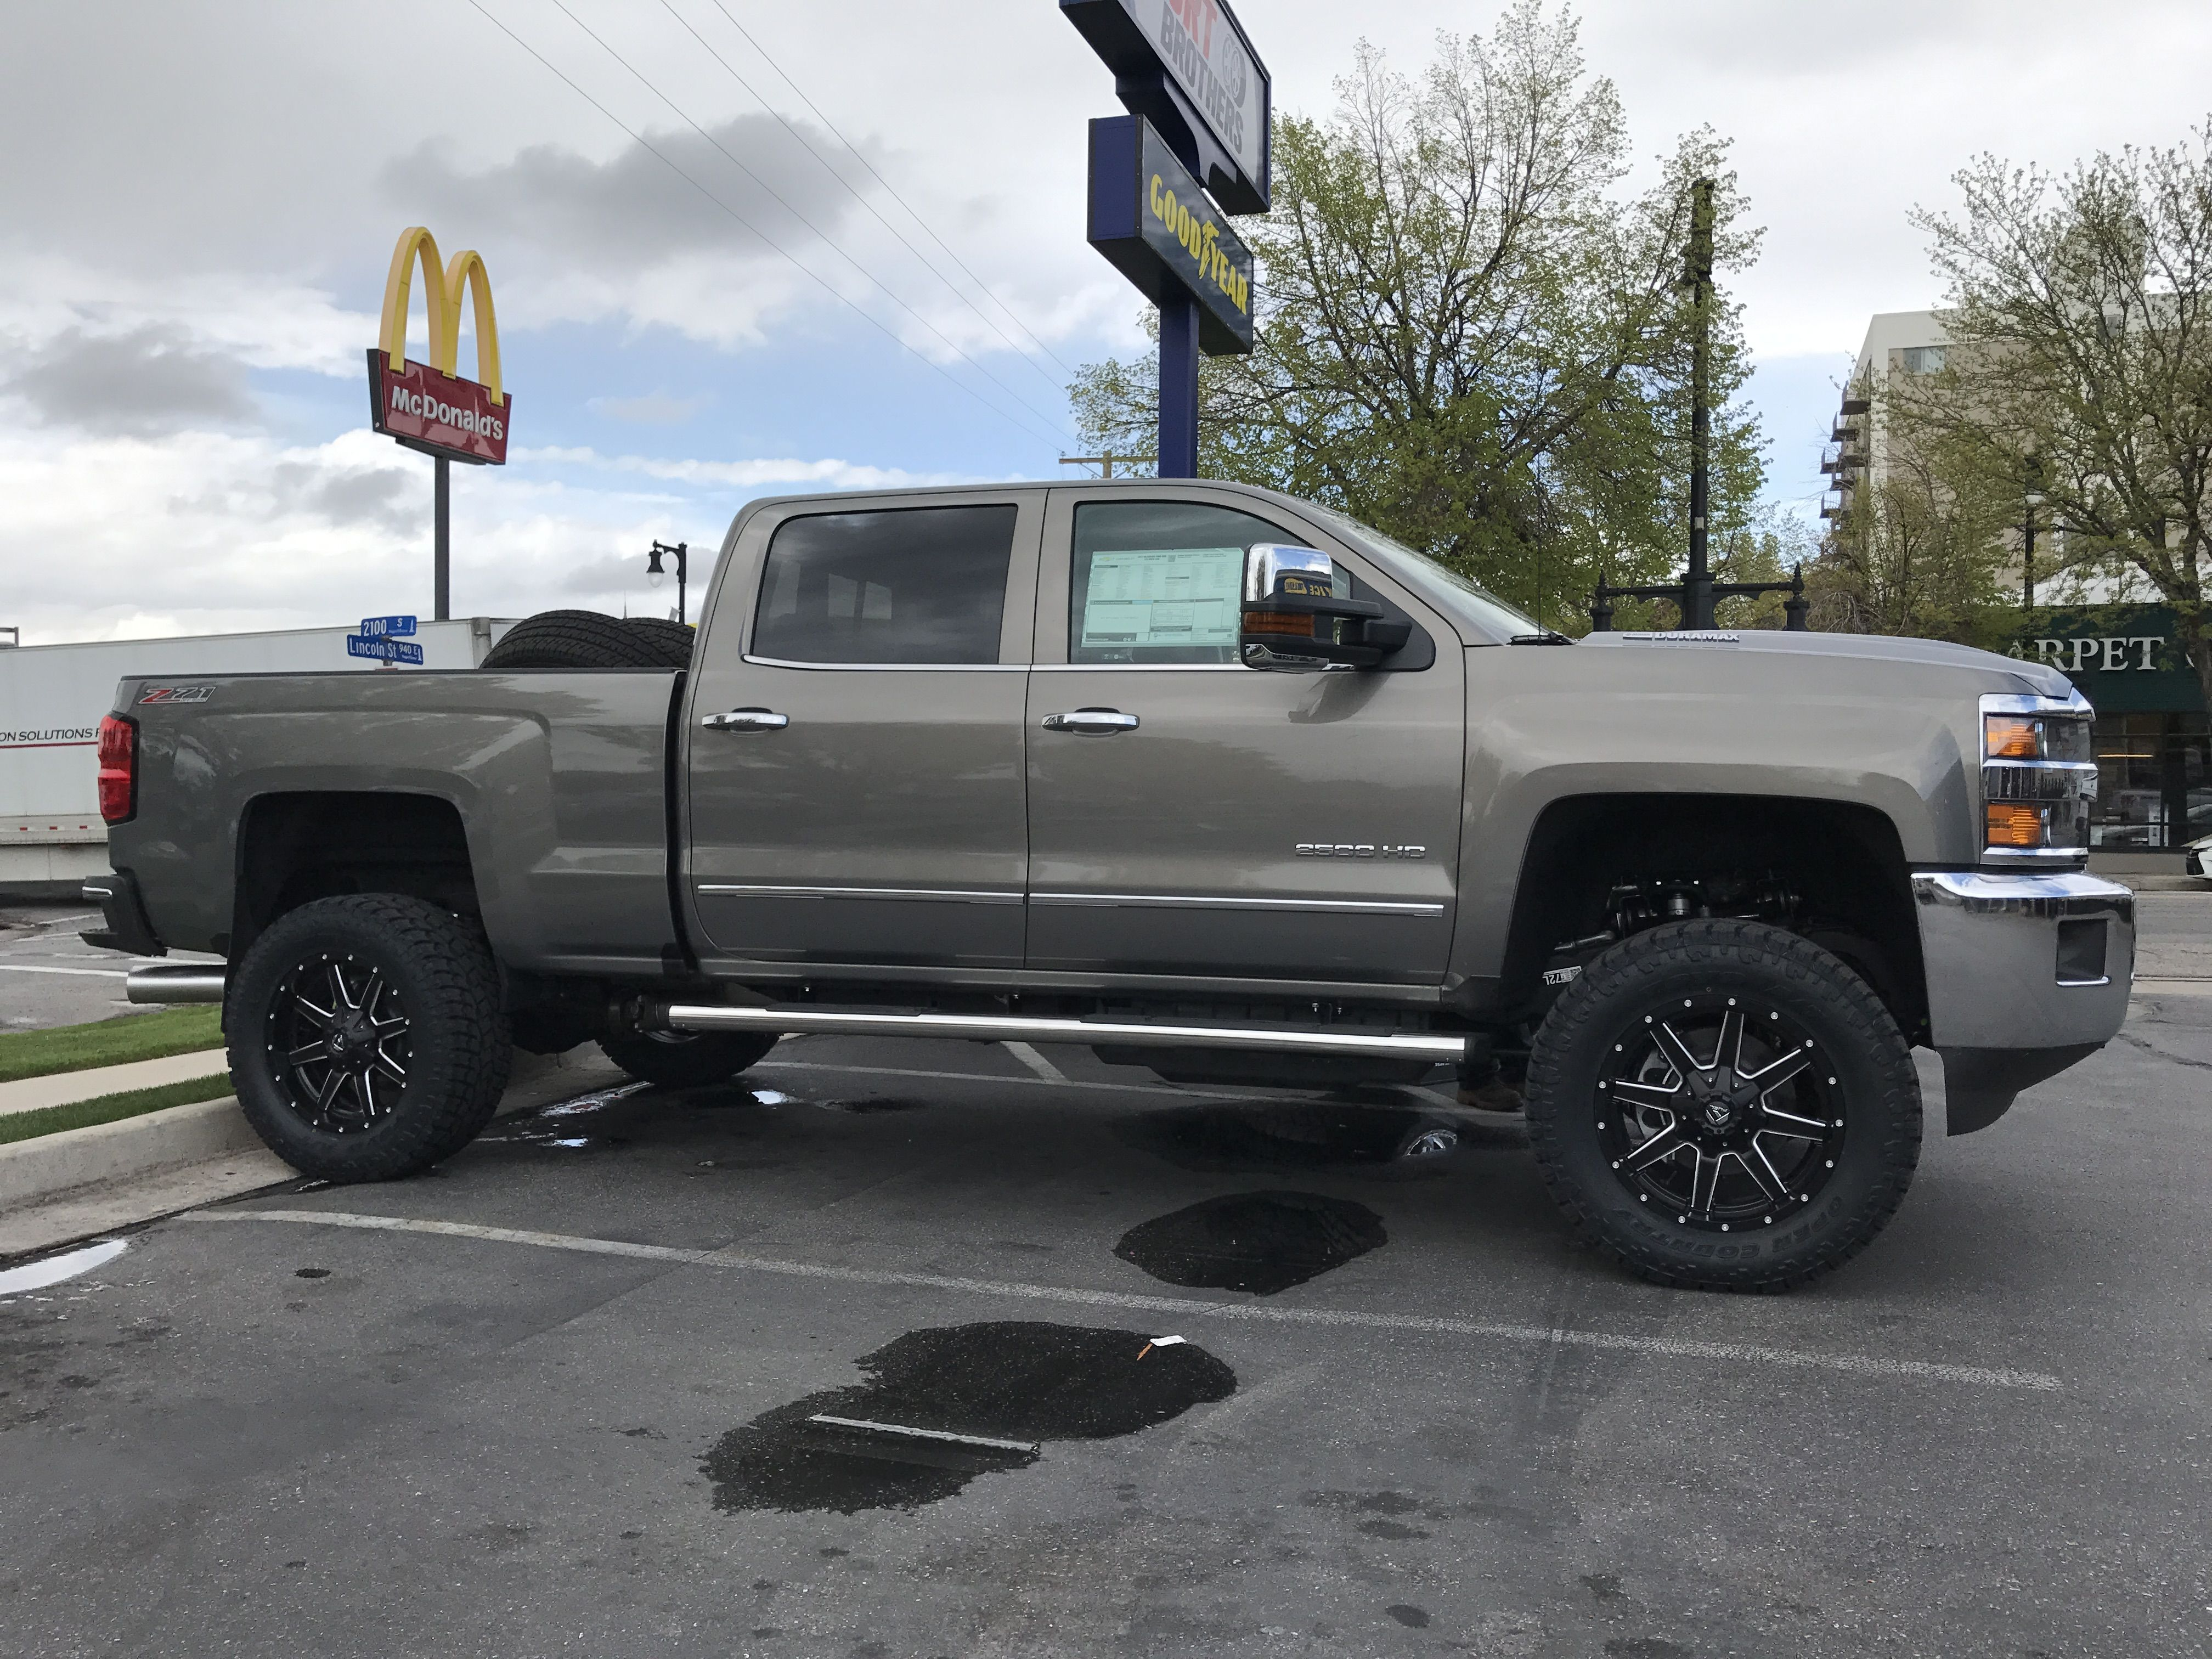 2017 chevy 2500hd with 4 bds lift and fox shocks 20x9 fuel maverick wheels and 35x12 50r20 toyo a t2 tires  [ 4032 x 3024 Pixel ]